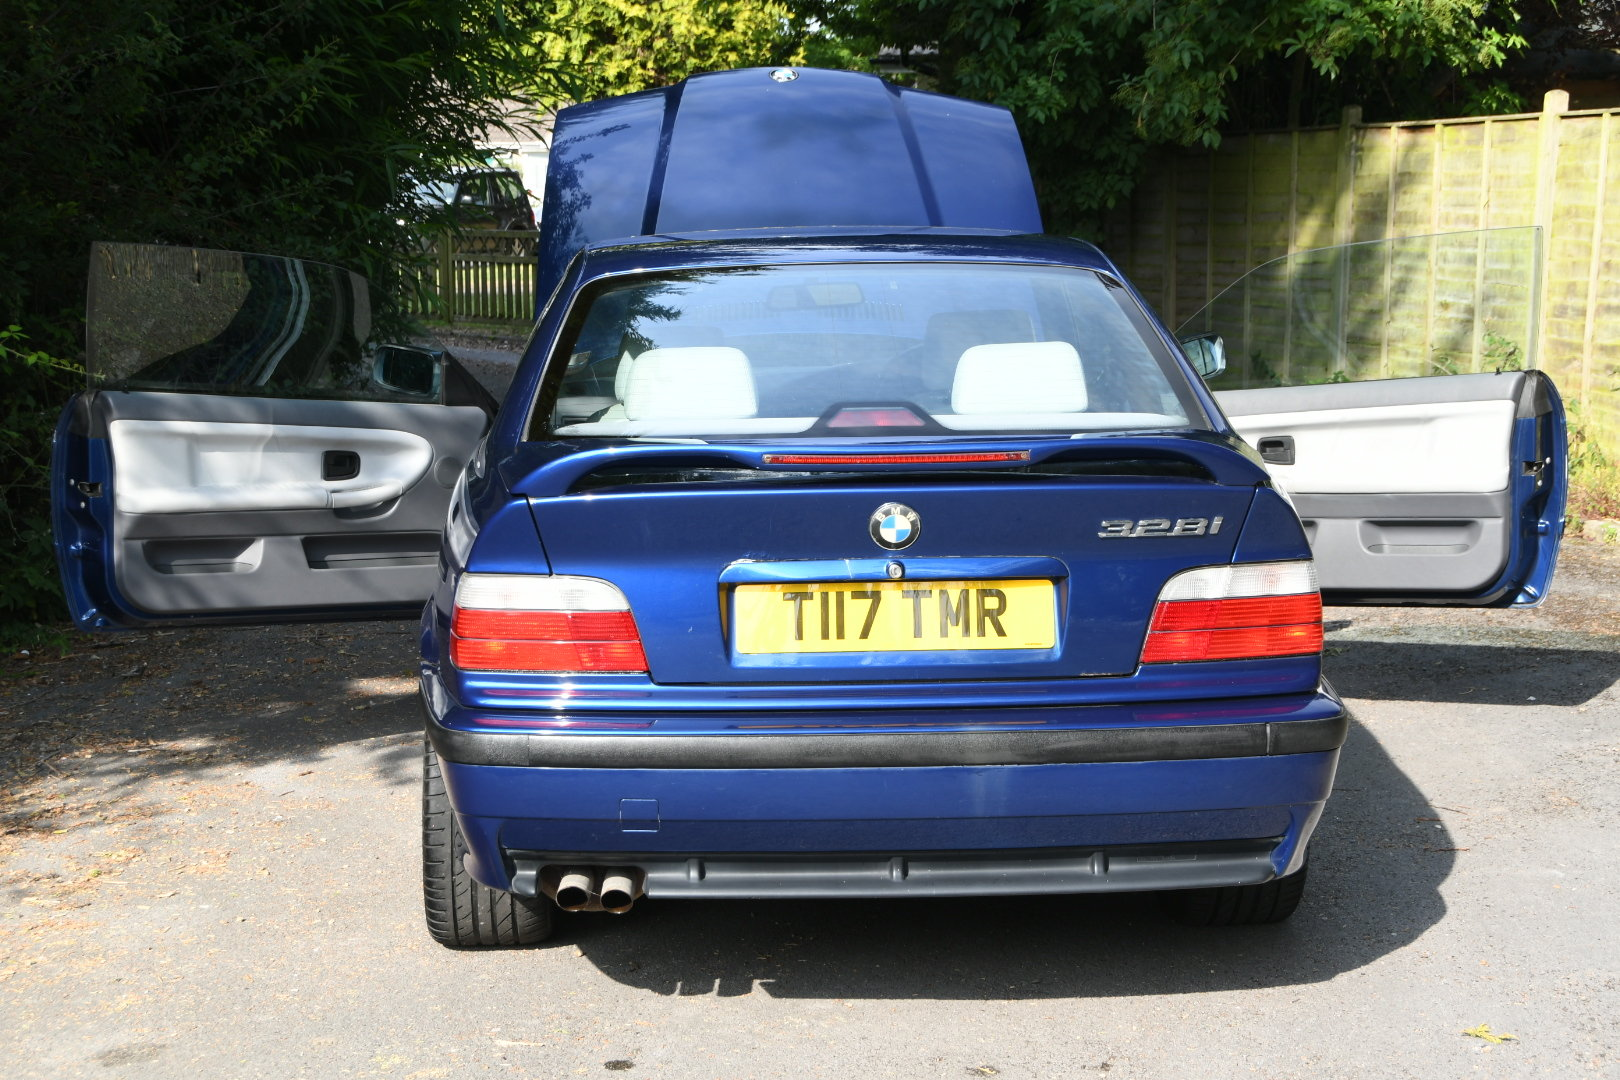 1999 Bmw 2.8i sport avus blue manual SOLD (picture 3 of 6)